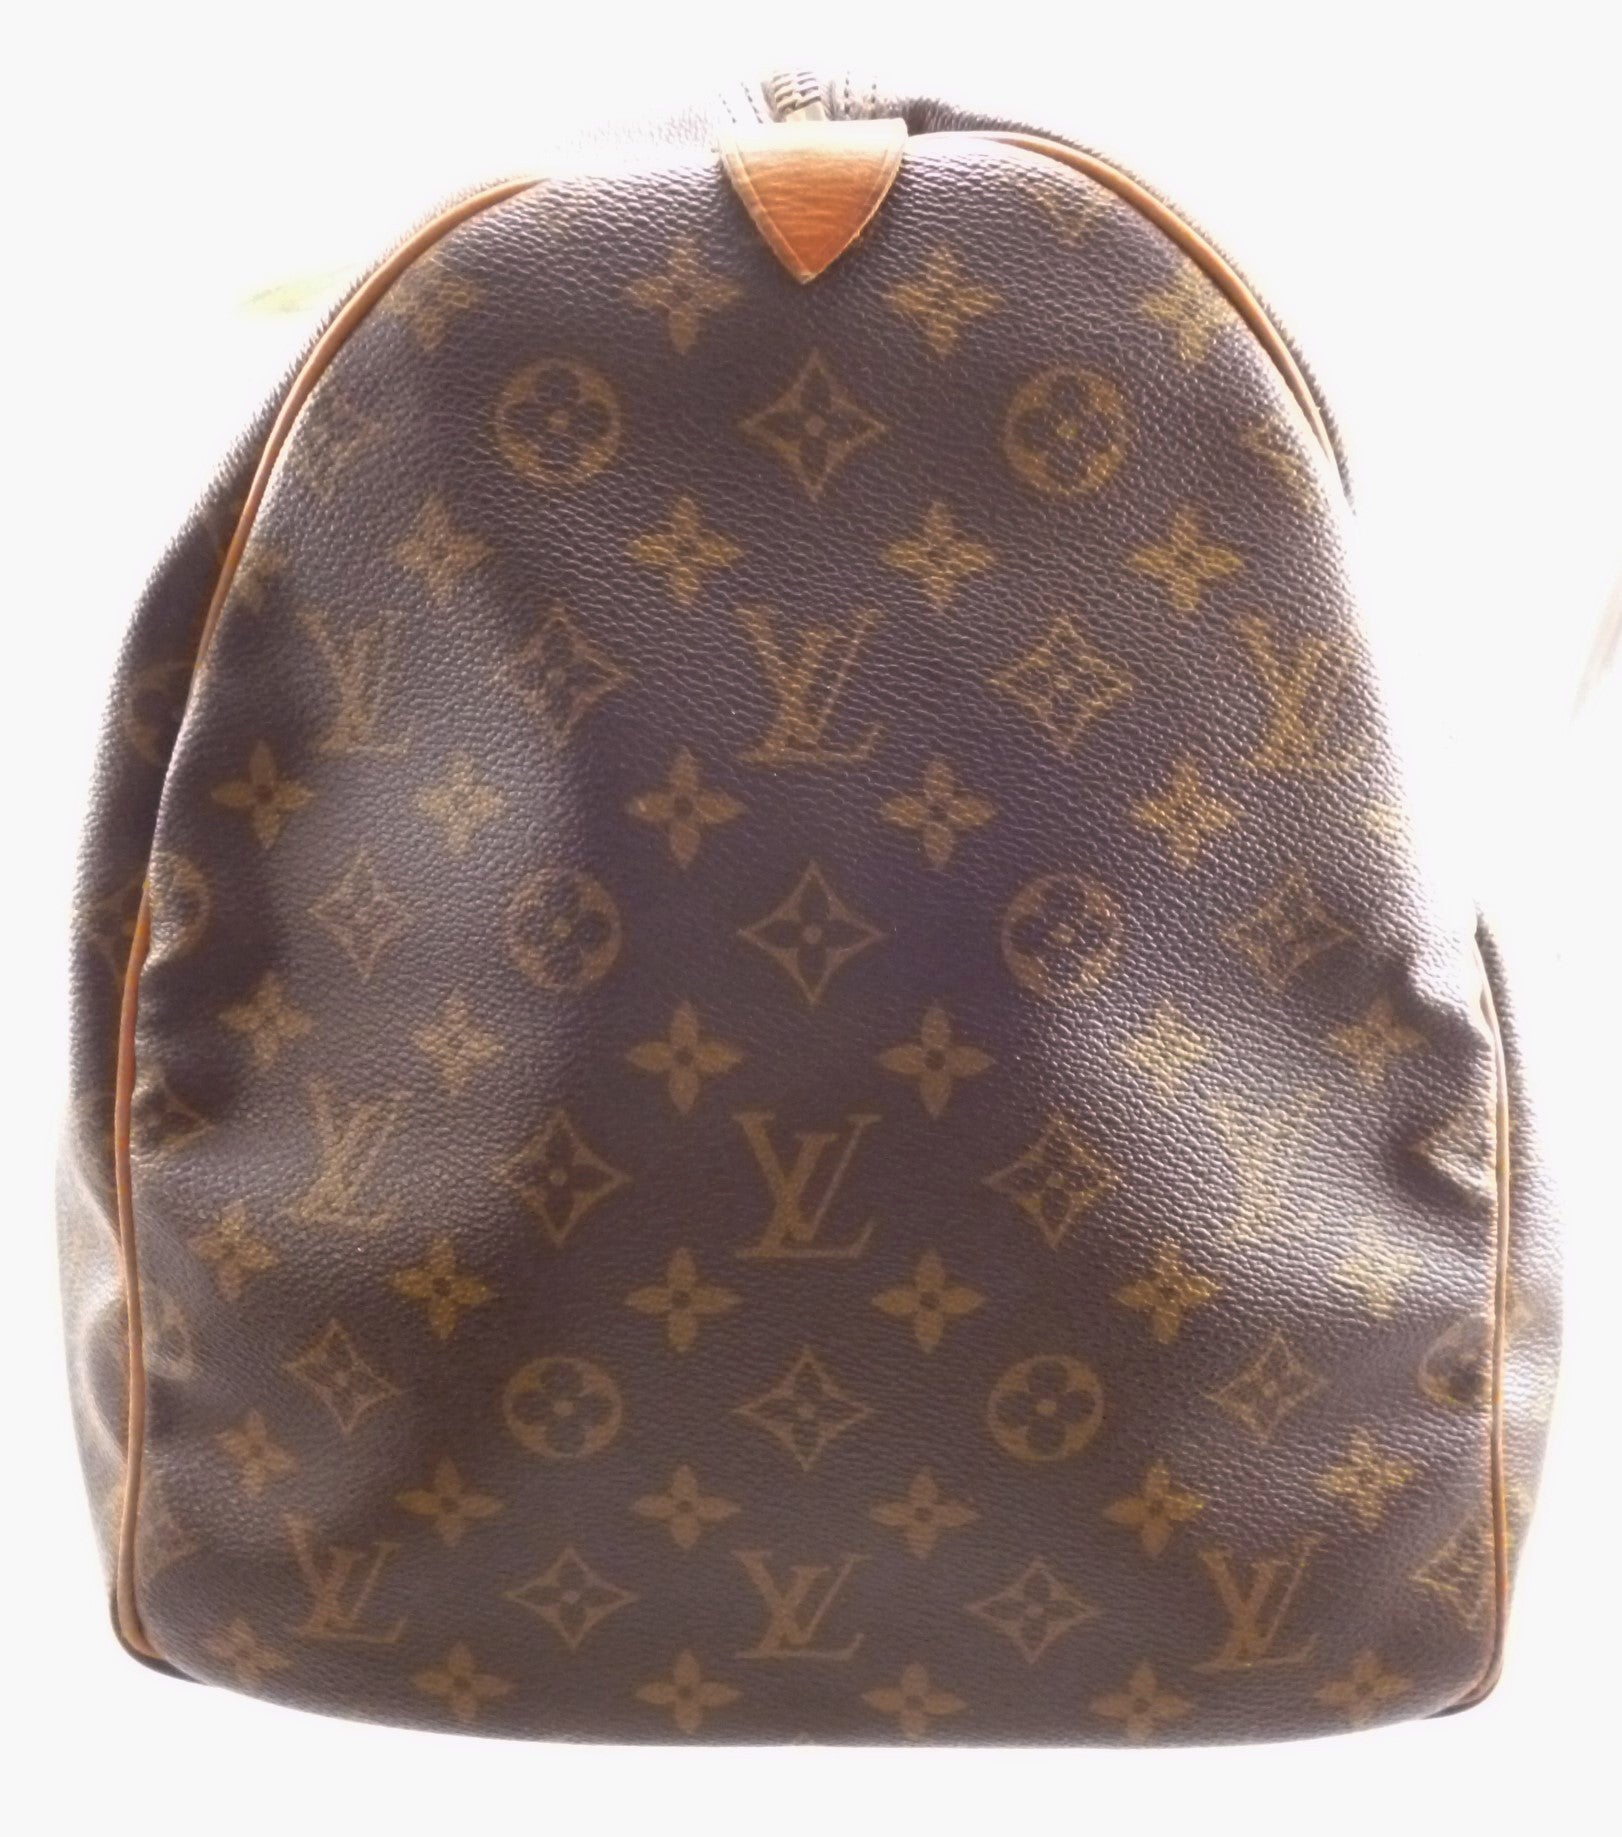 louis vuitton used bags. louis vuitton authentic monogram keepall 55 travel bag used bags